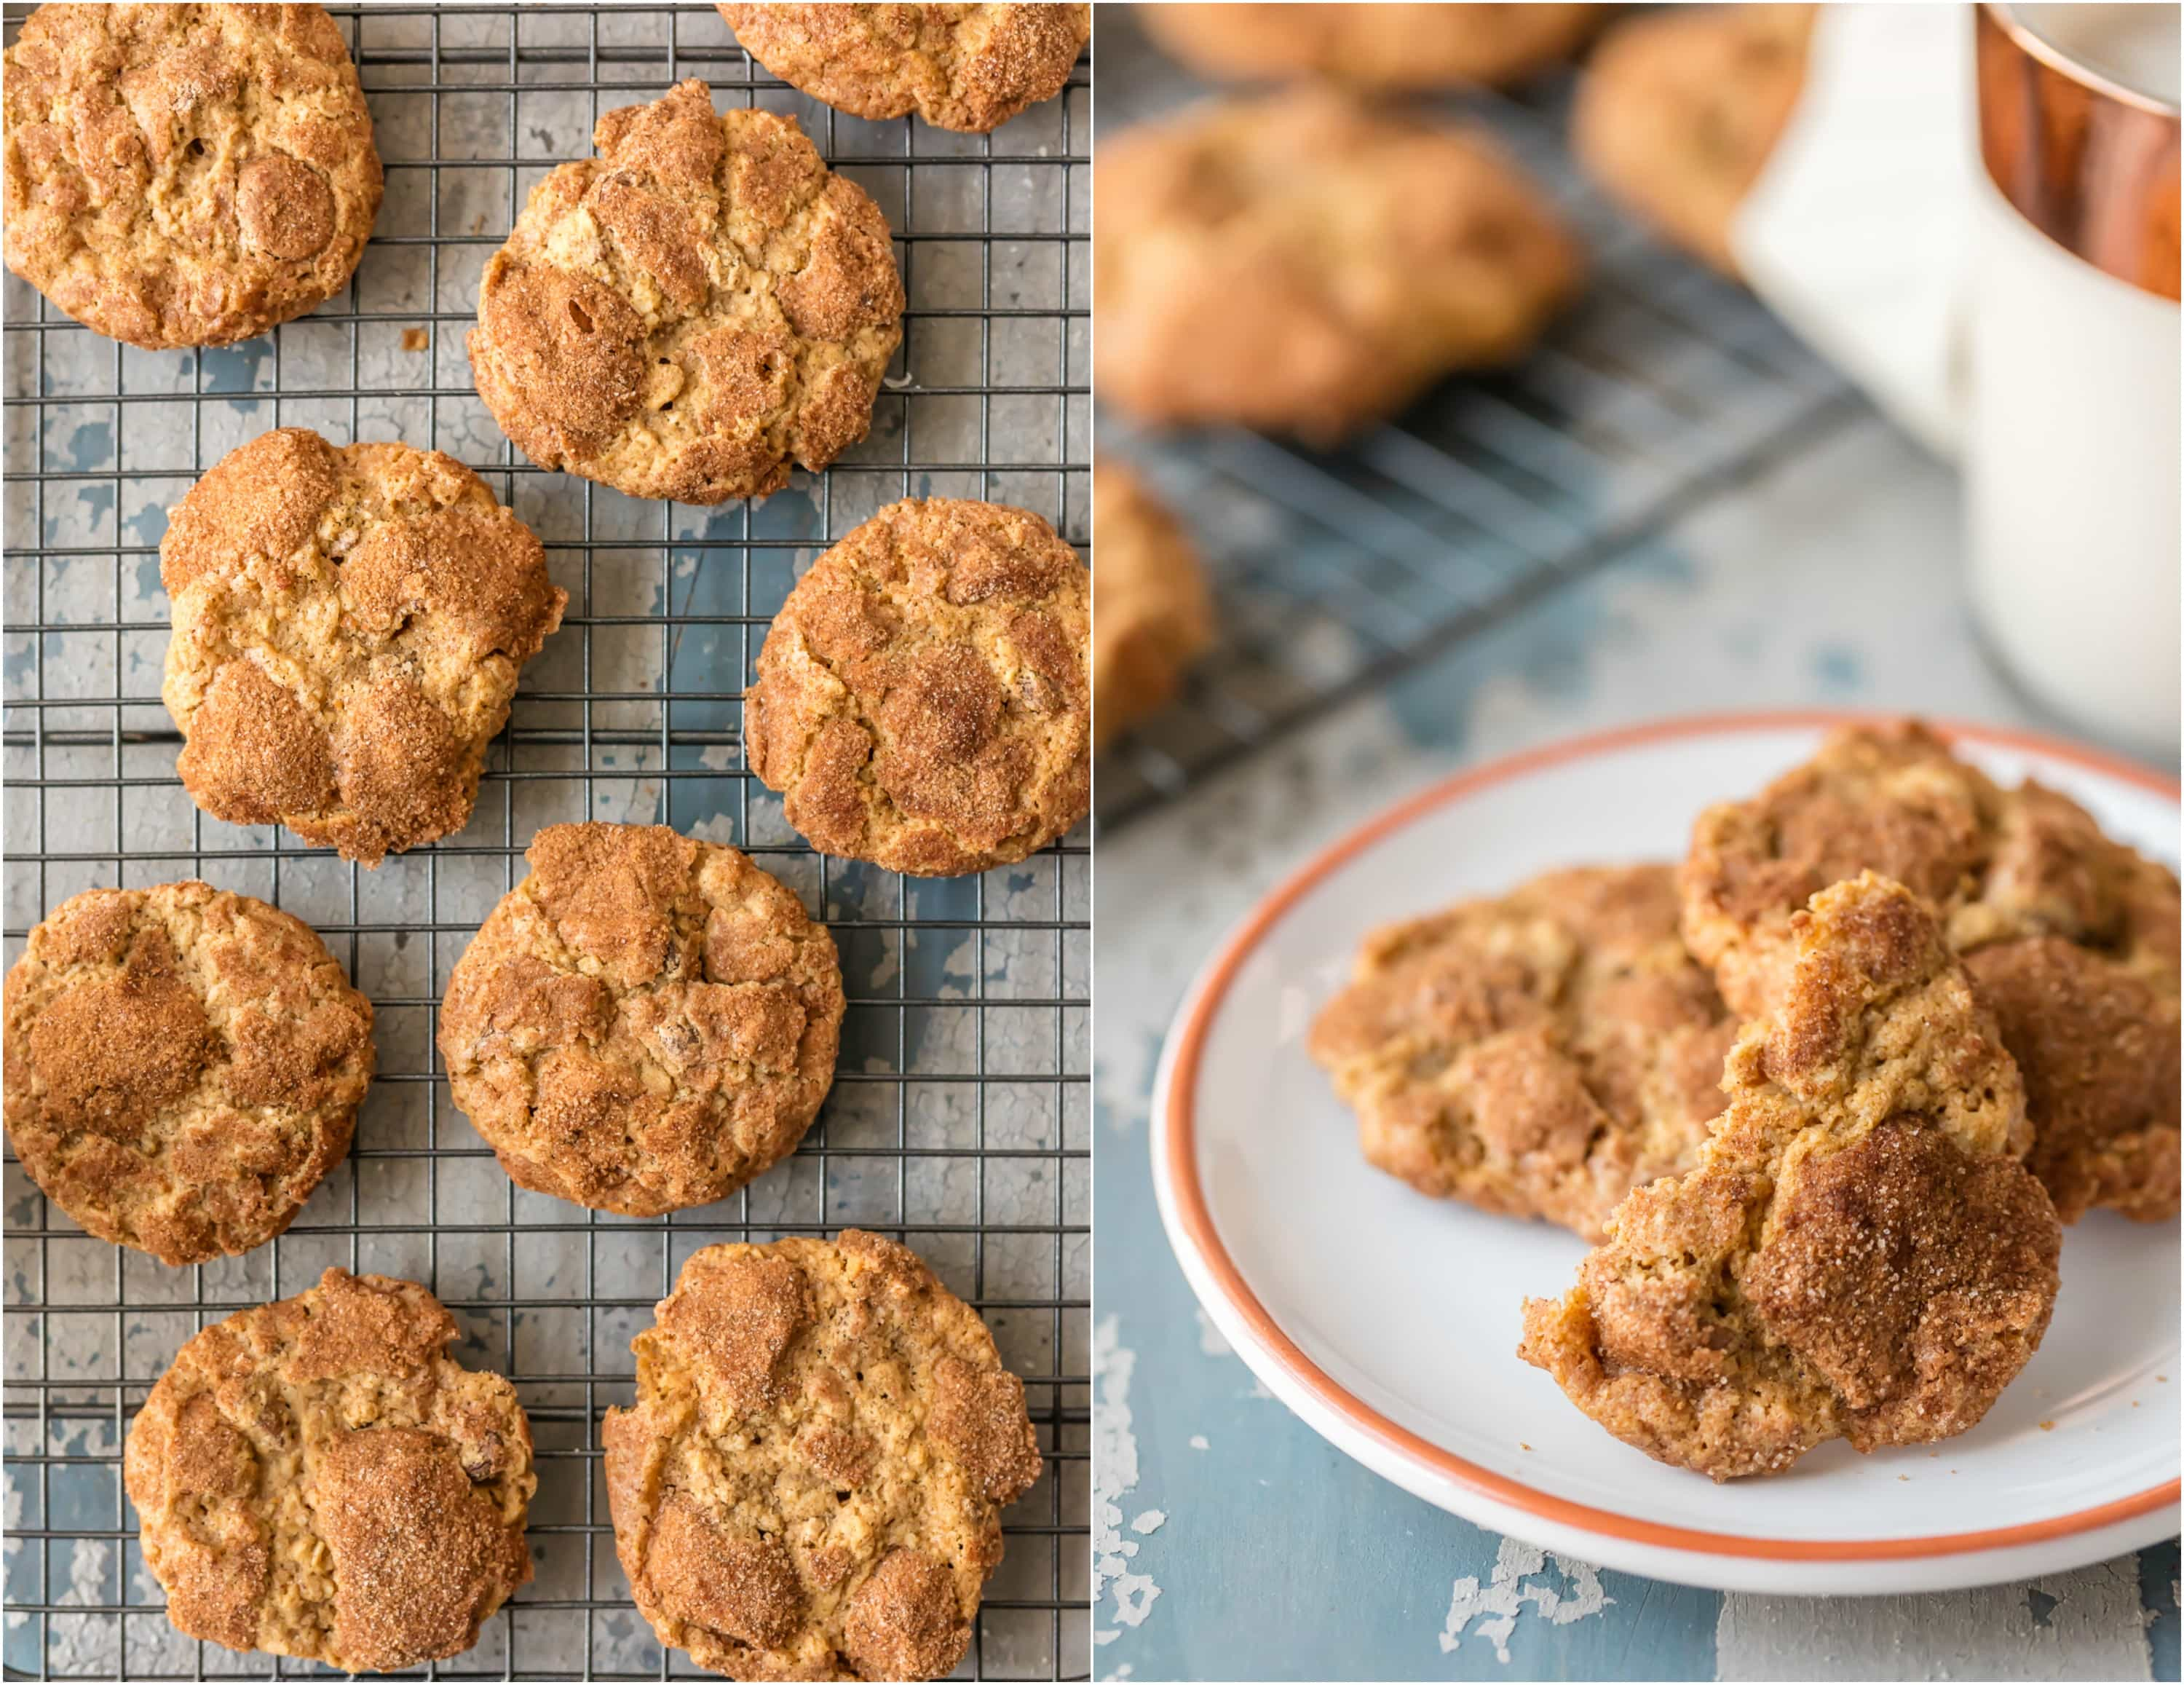 """We call these OATMEAL CHOCOLATE CHIP CRINKLES """"Oatmeal Doozies"""" because they are my Mom's master creation! The perfect crispy outside and chewy inside, the ultimate Oatmeal Chocolate Chip Cookie!"""